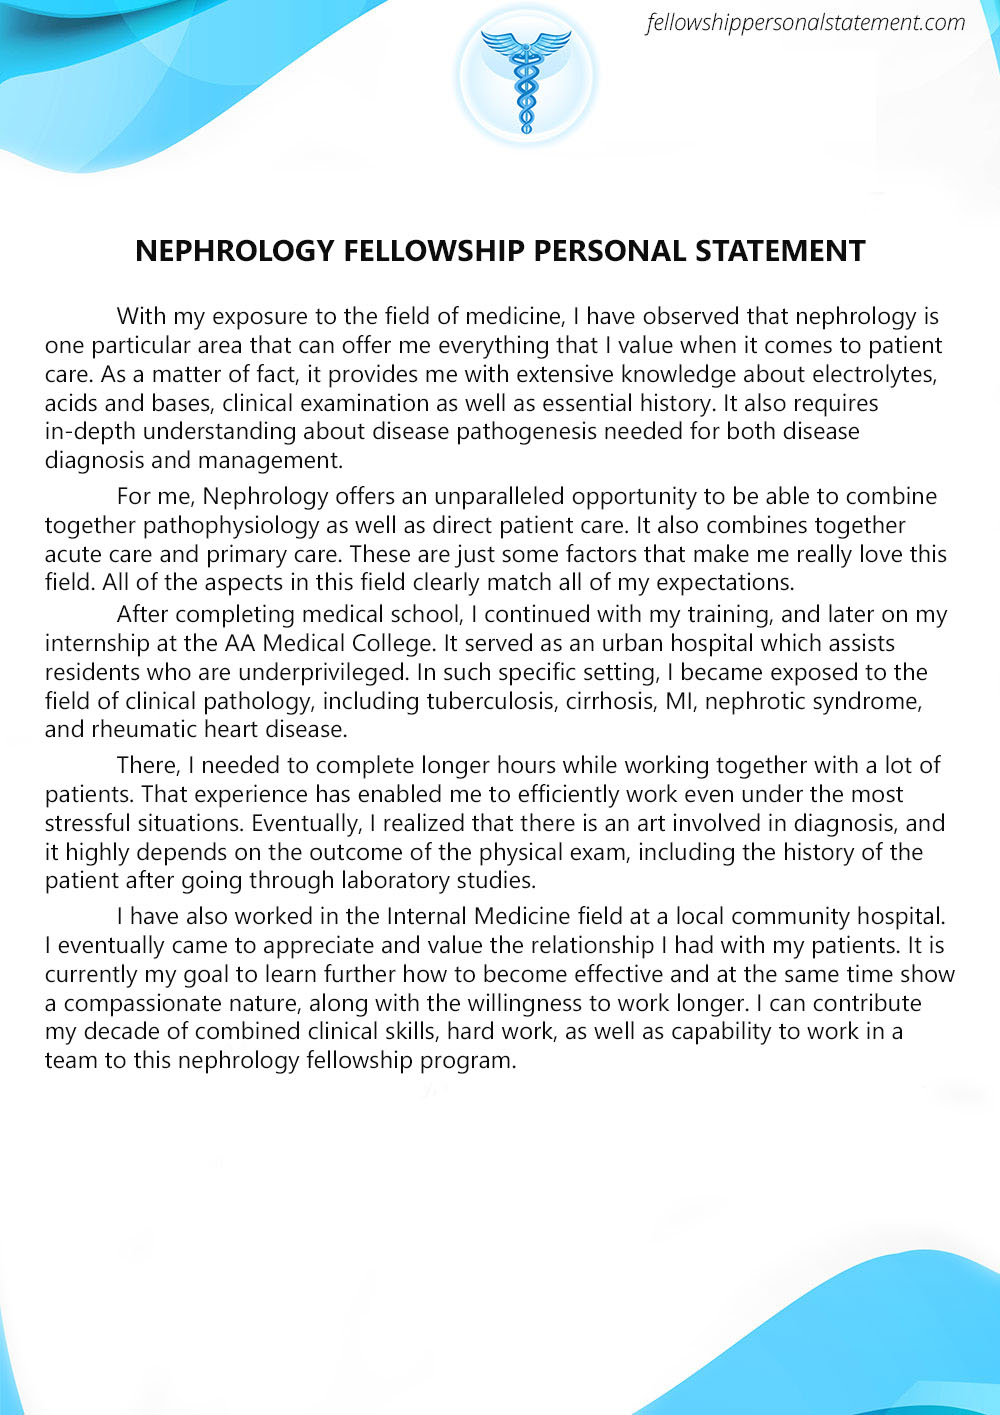 impressive nephrology fellowship personal statement writing